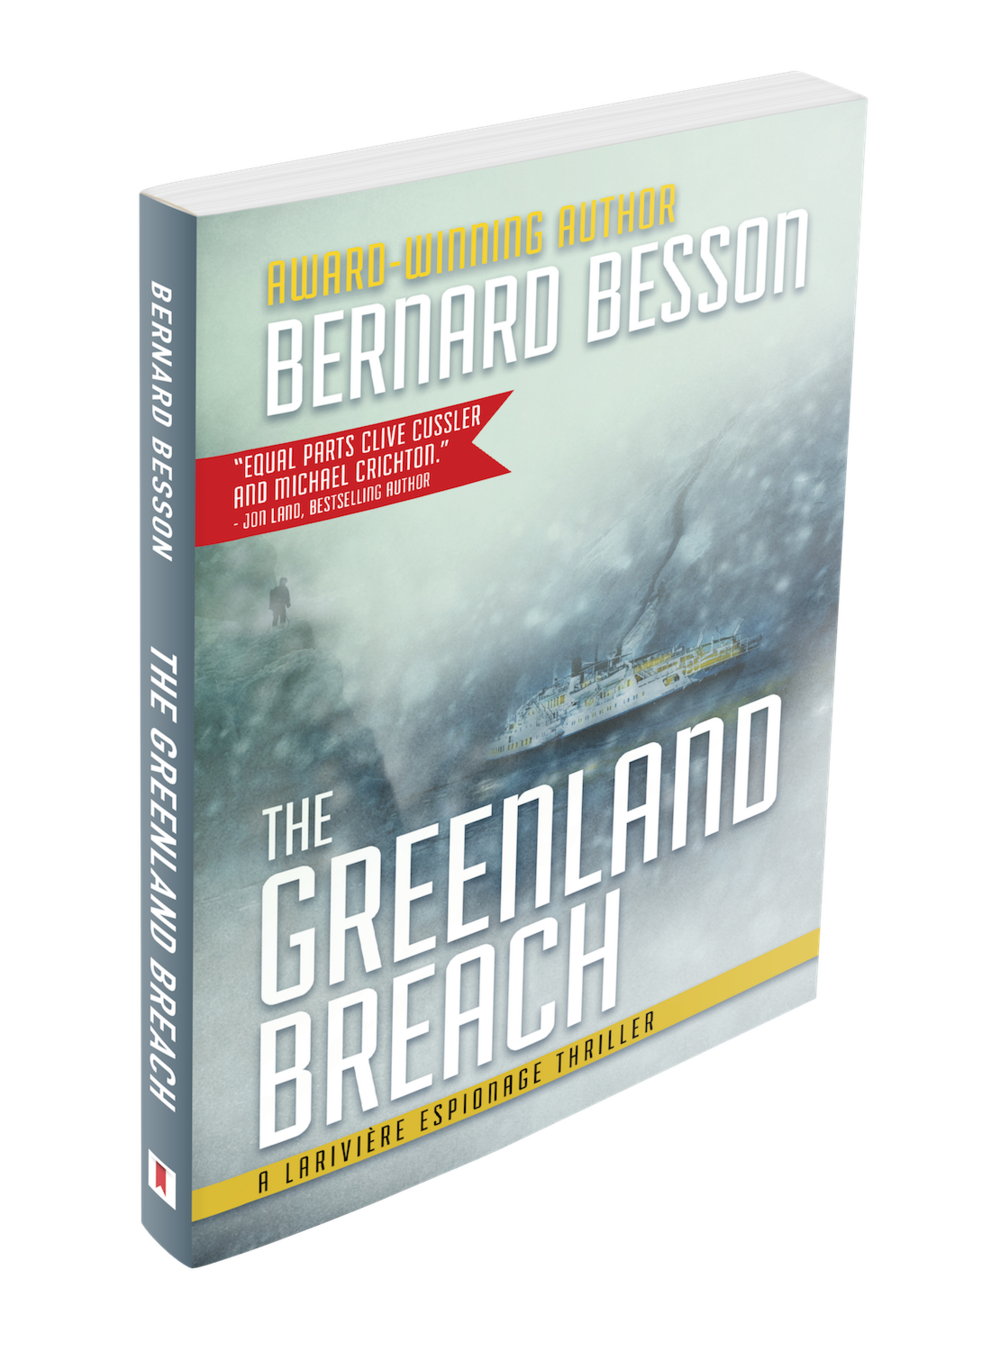 GreenlandBreach copy.png